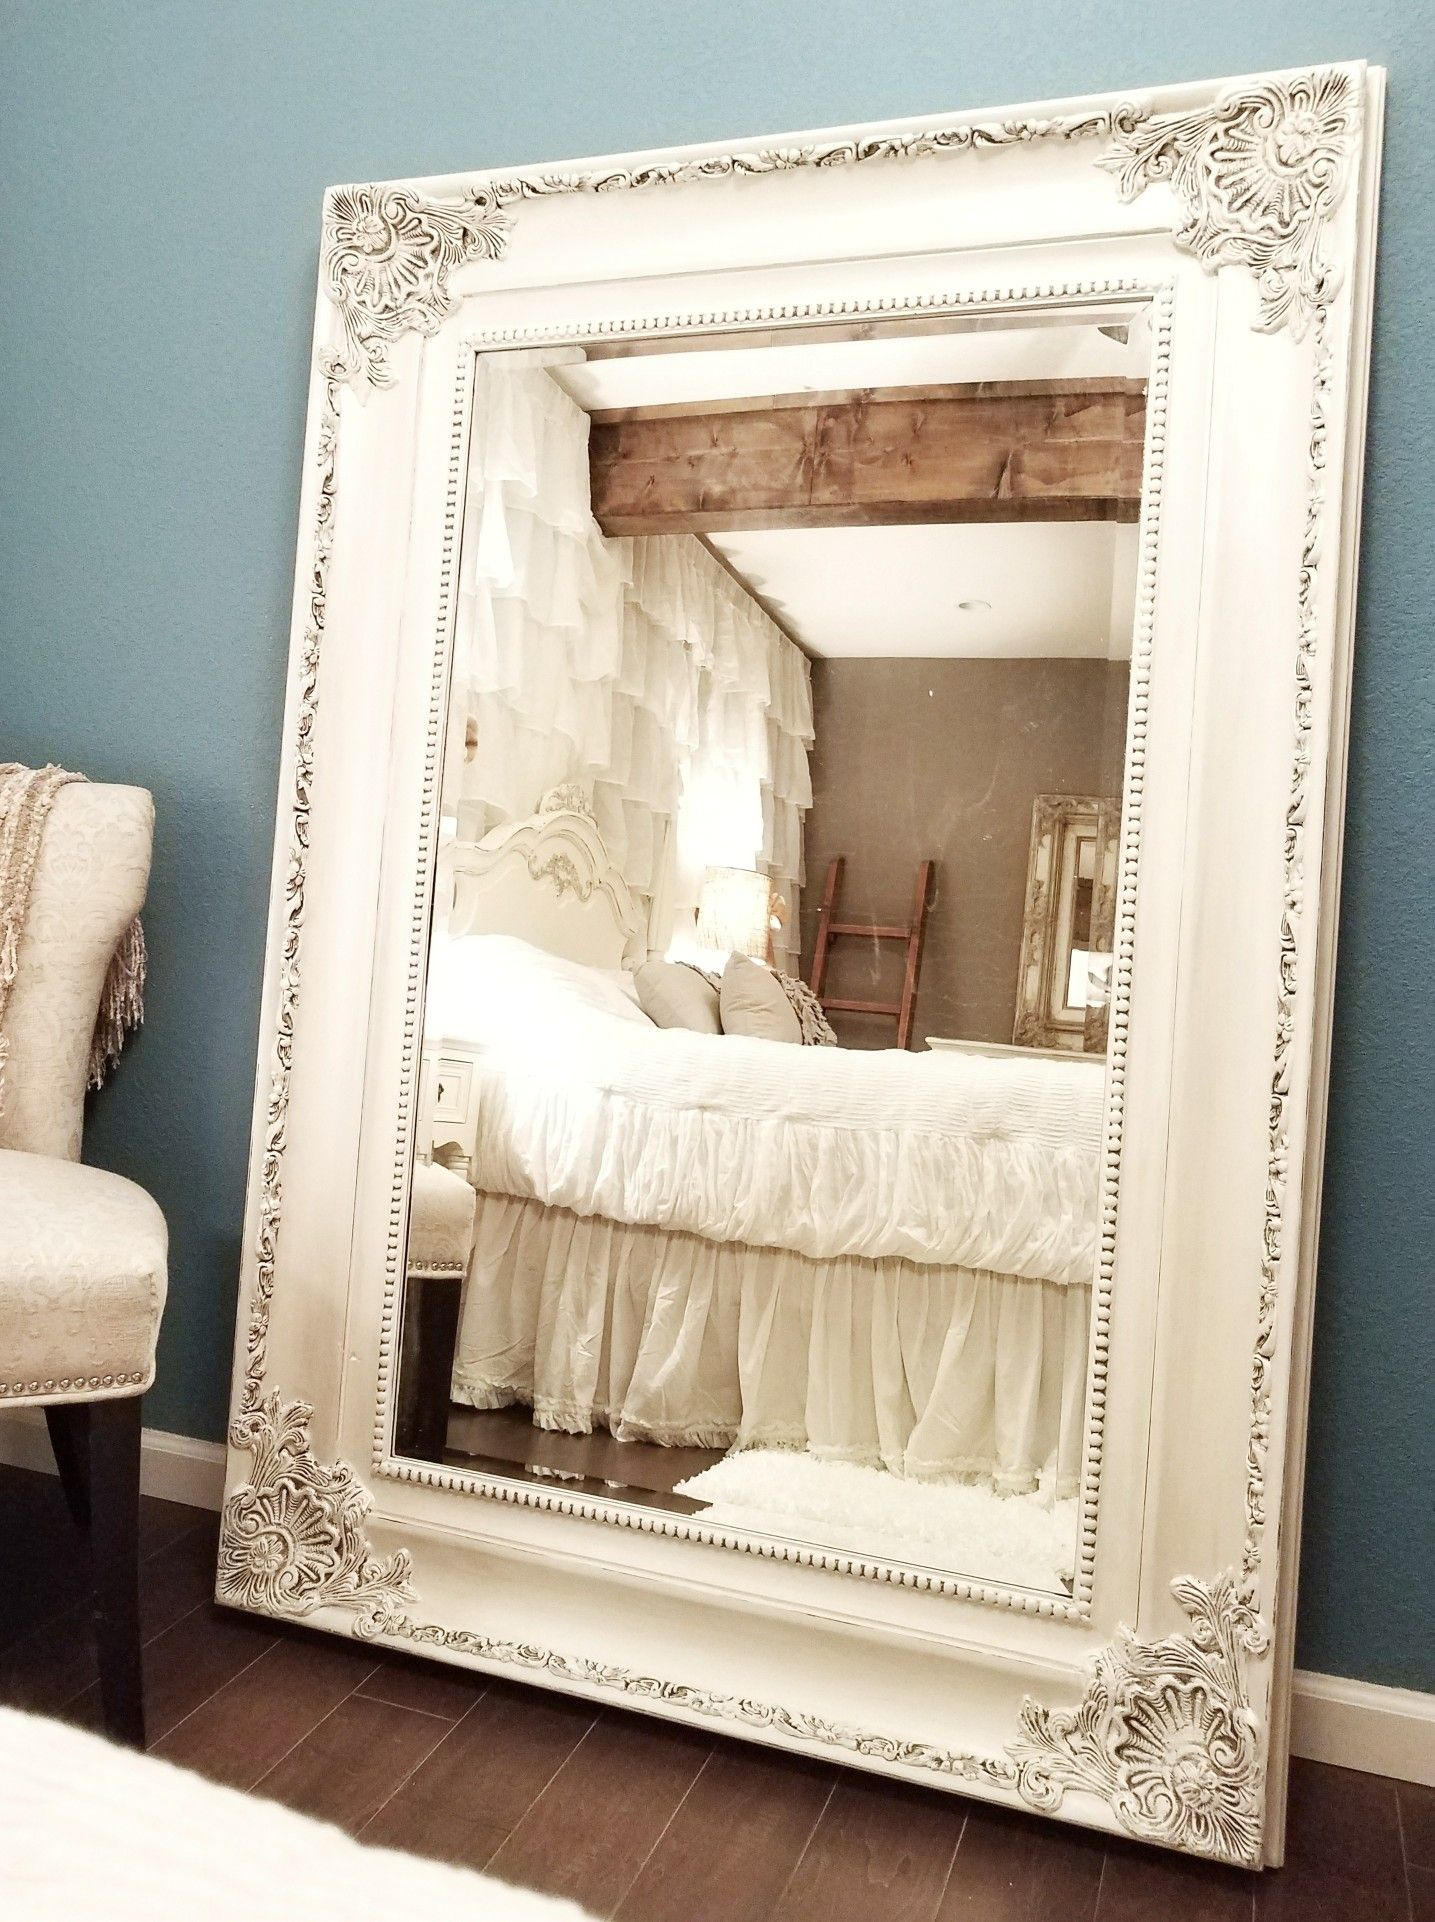 Beautifull Ornate Mirror Painted In Annie Sloan Mix Of Old White Pure White And Pearl Plaster Facebook Com White Ornate Mirror Mirror Painting Ornate Mirror